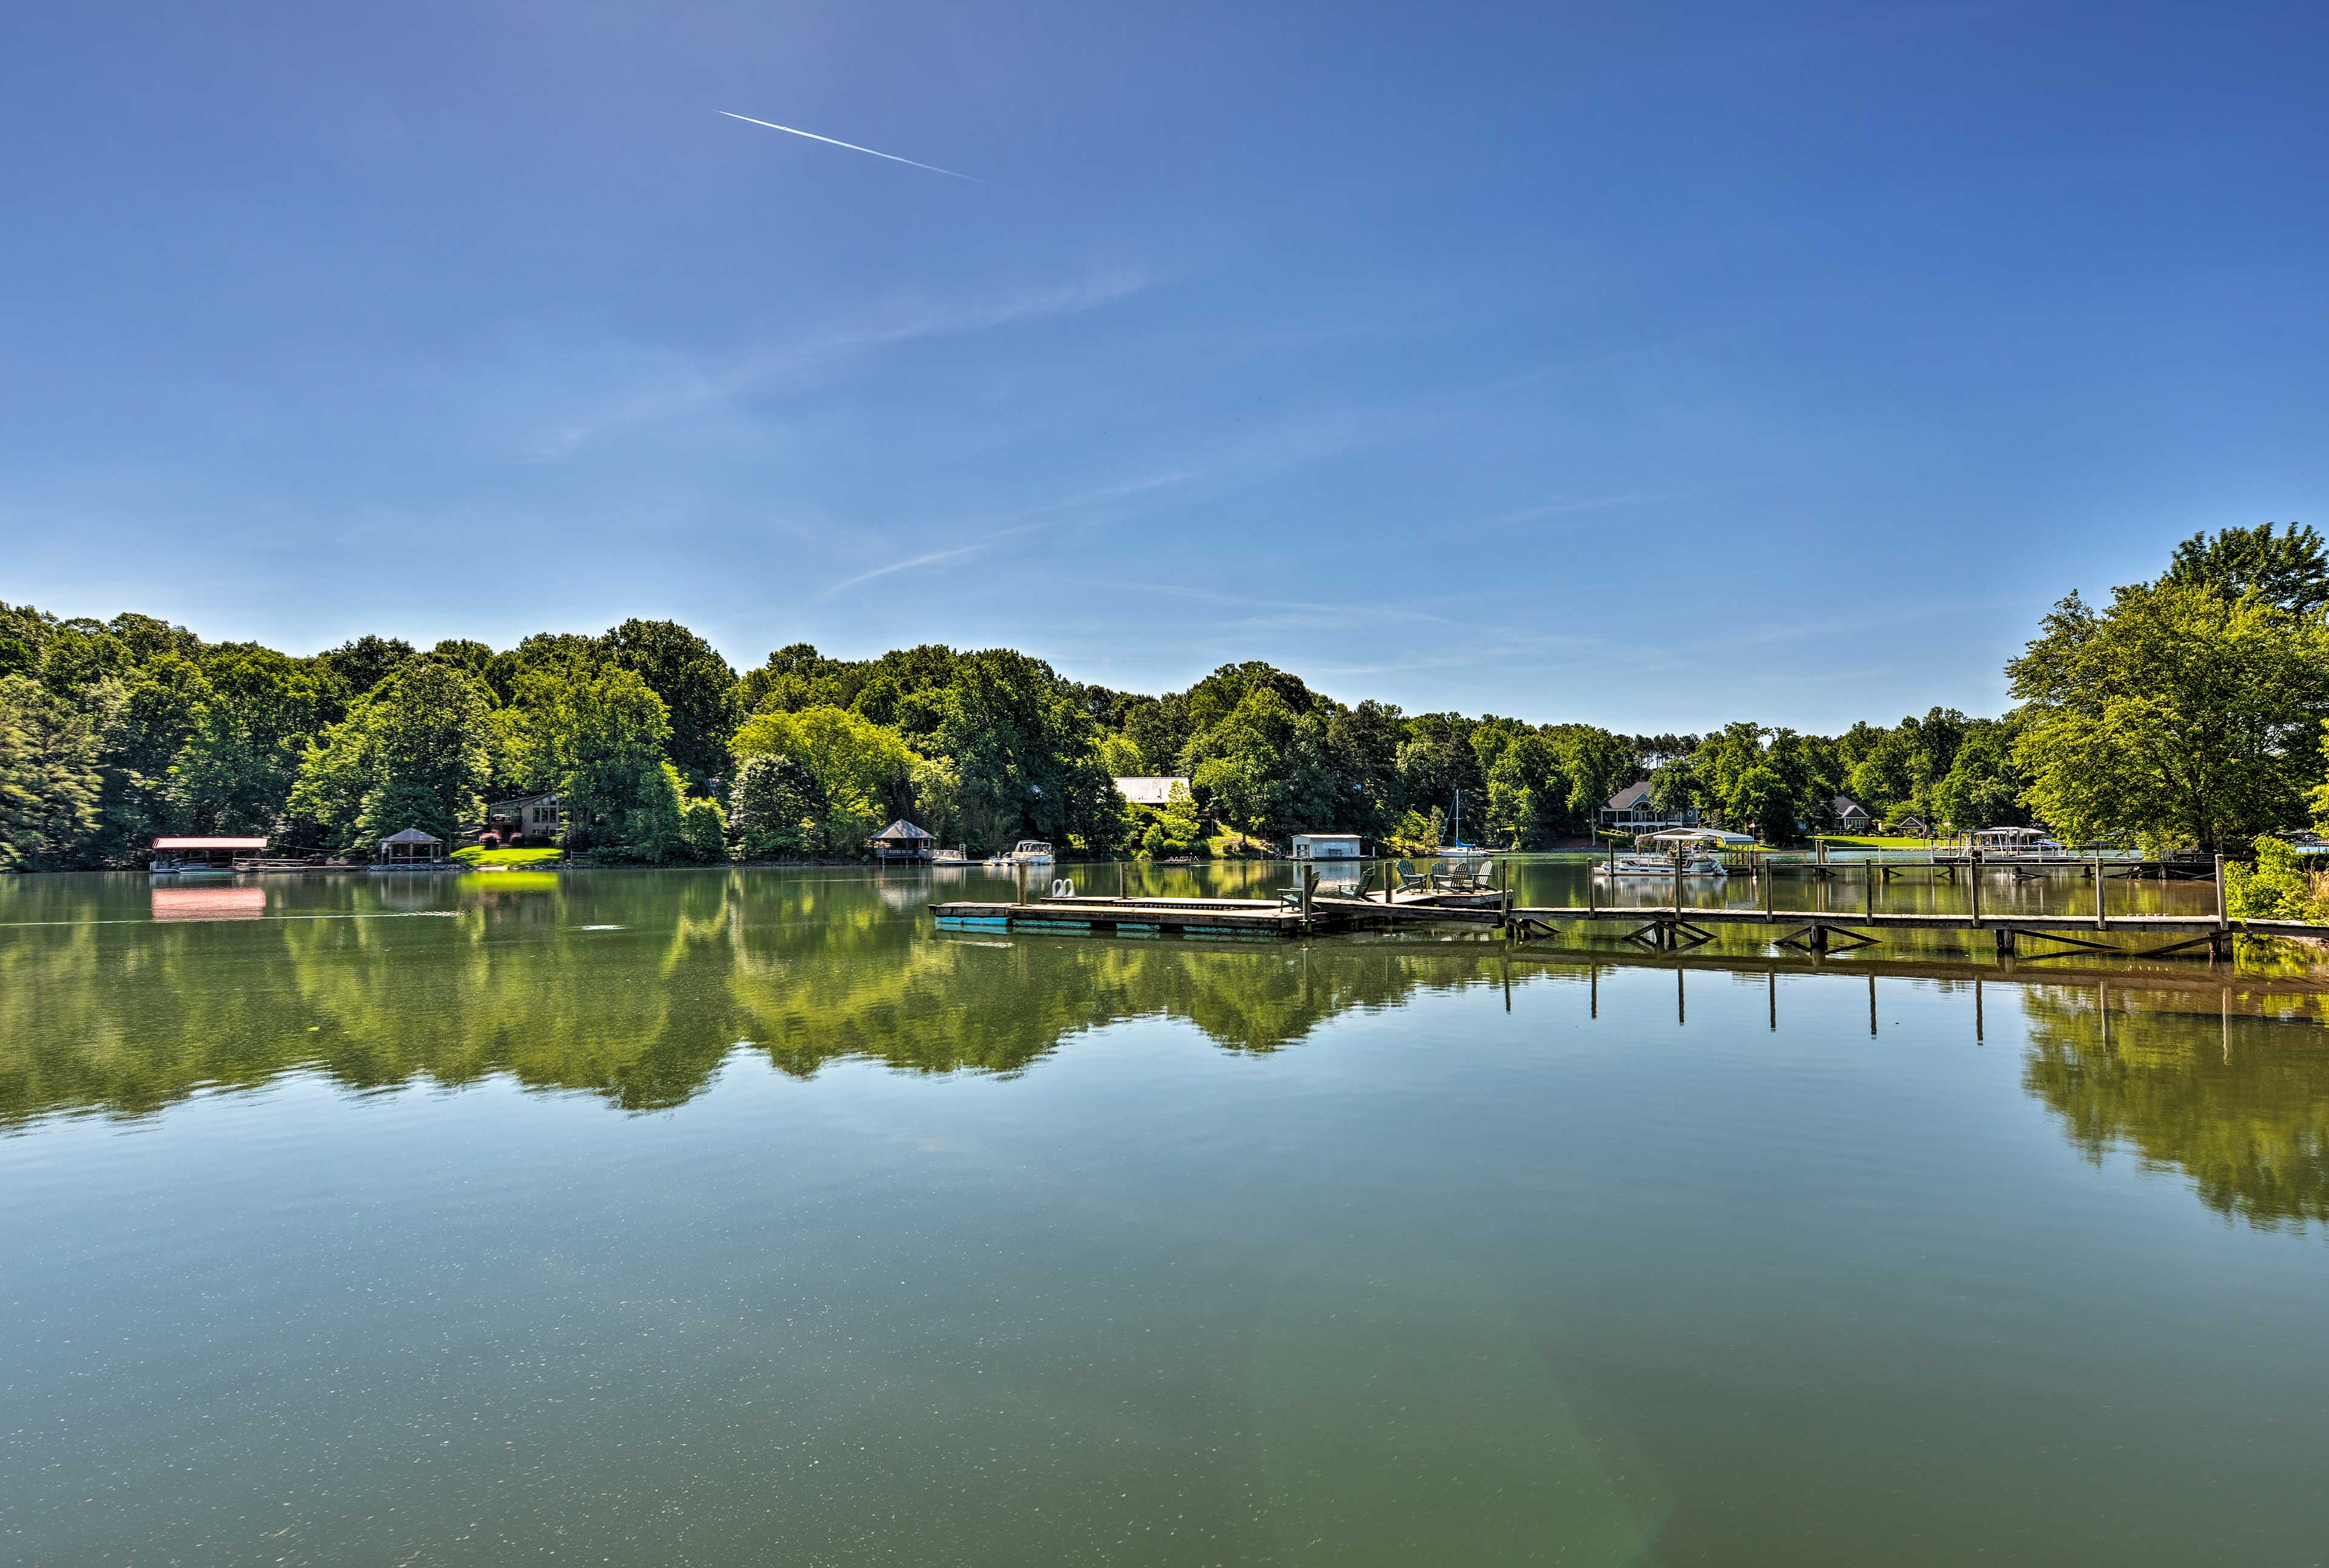 You'll love this peaceful cove surrounding the lake house.